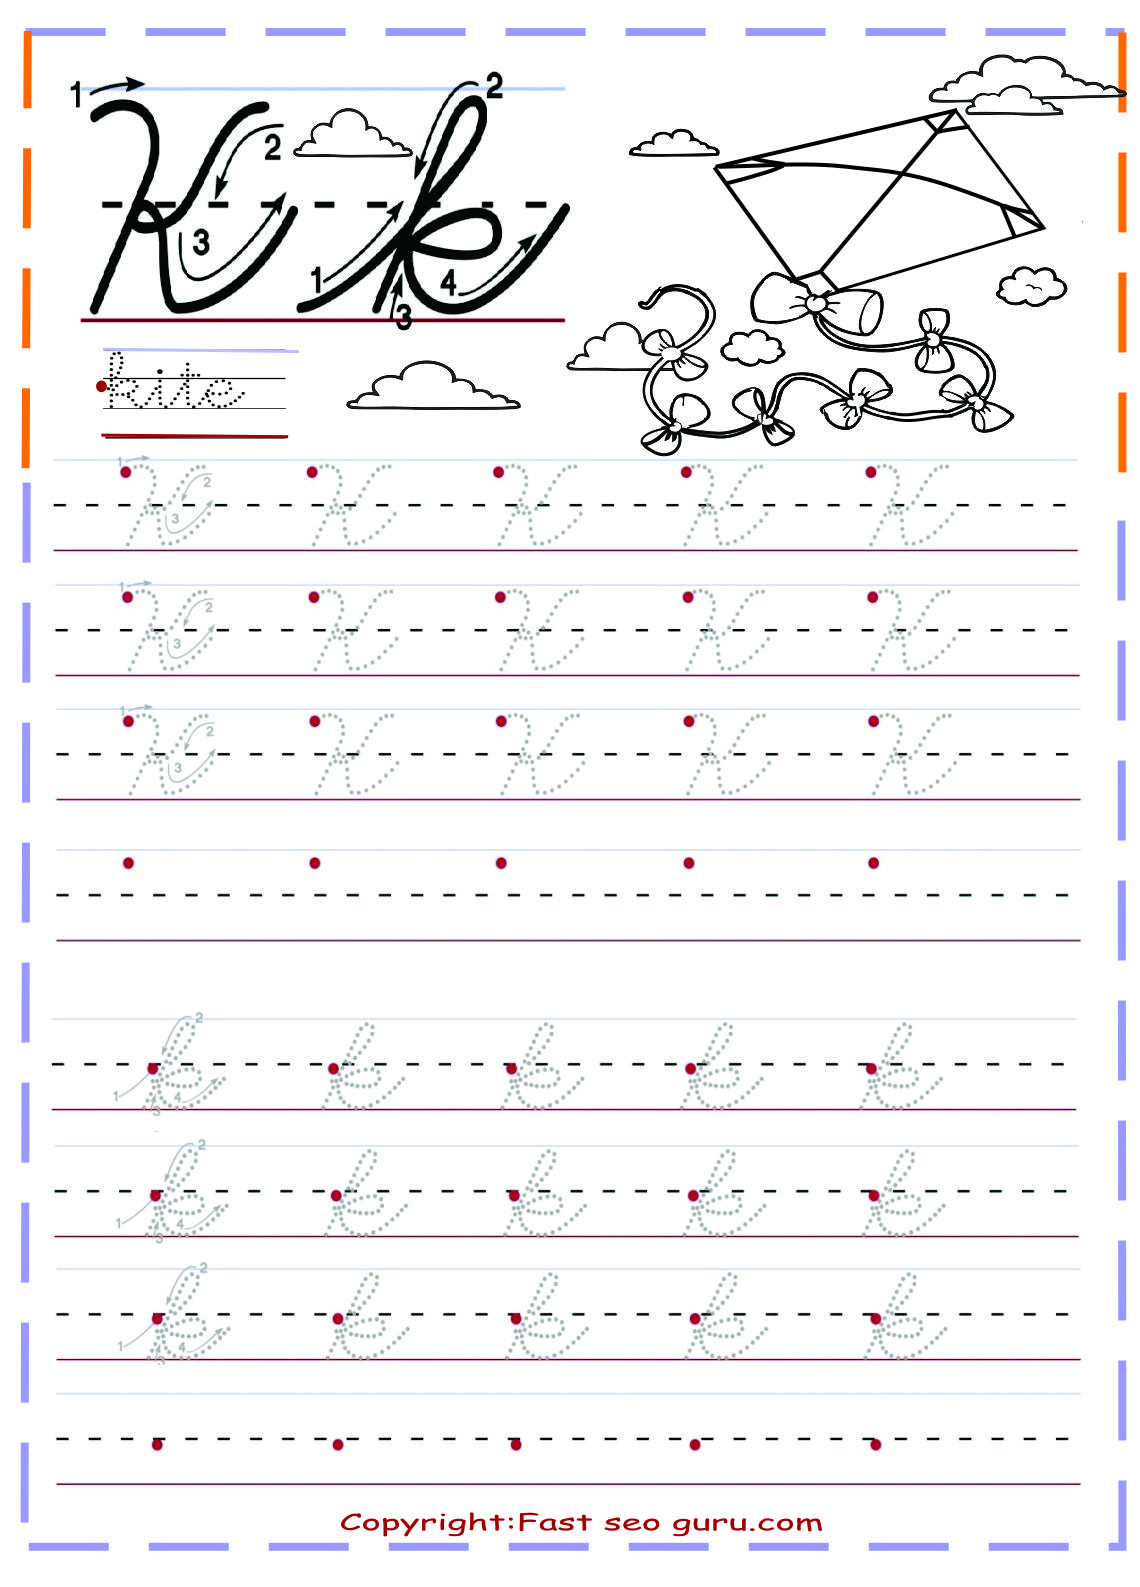 Cursive Handwriting Tracing Worksheets Letter K For Kite